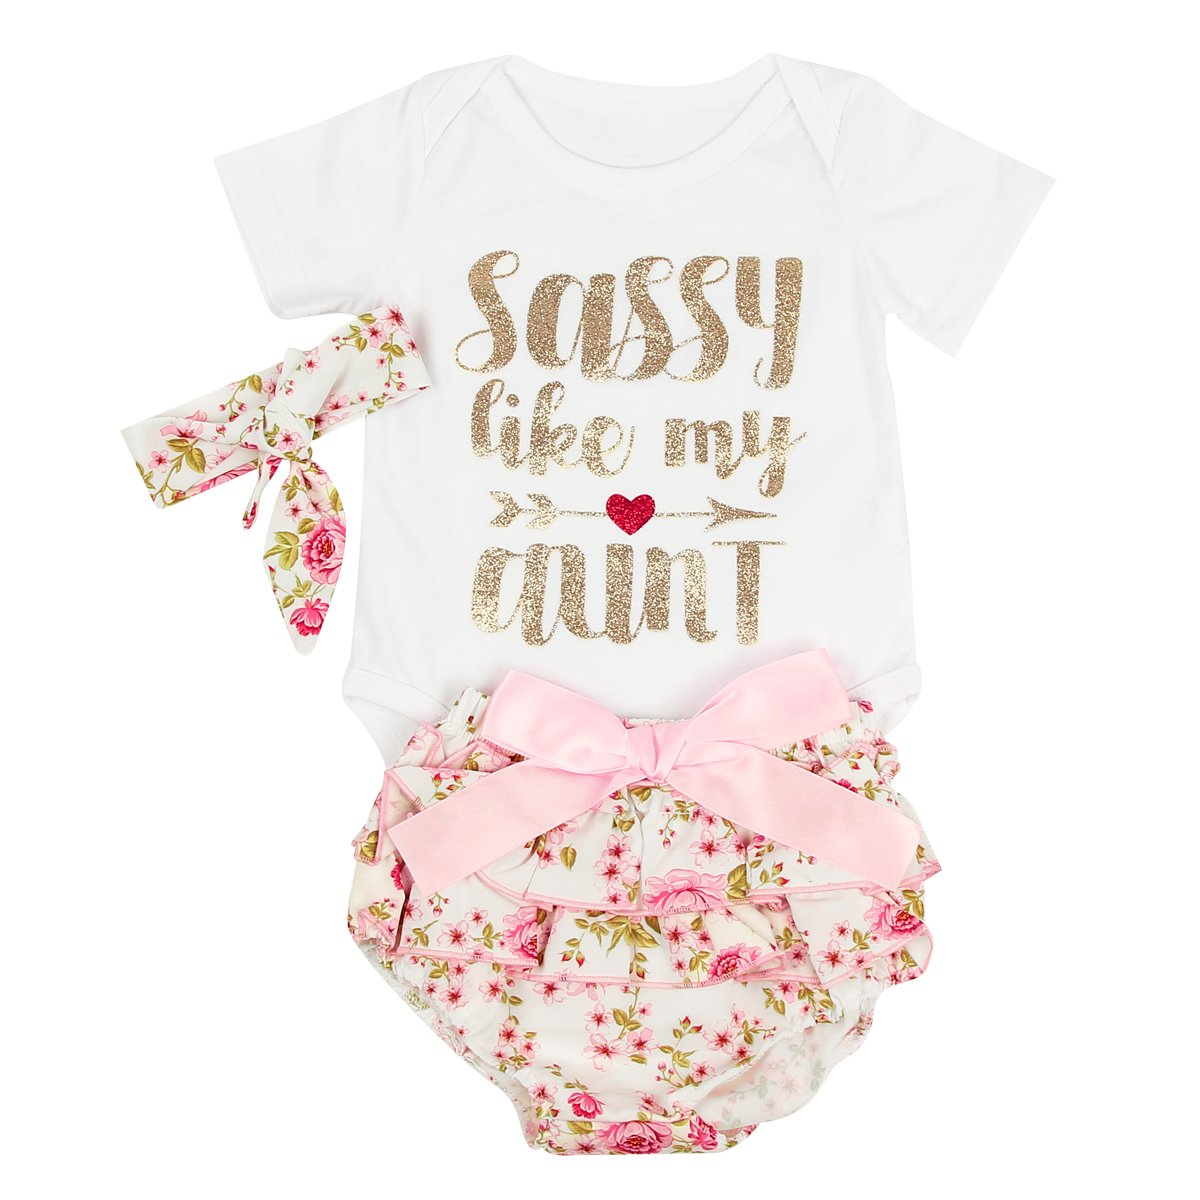 0-24M Puseky Infant Baby Girls Letters Romper+Floral Shorts+Headband Clothes Set (12-18 Months, White+Floral)